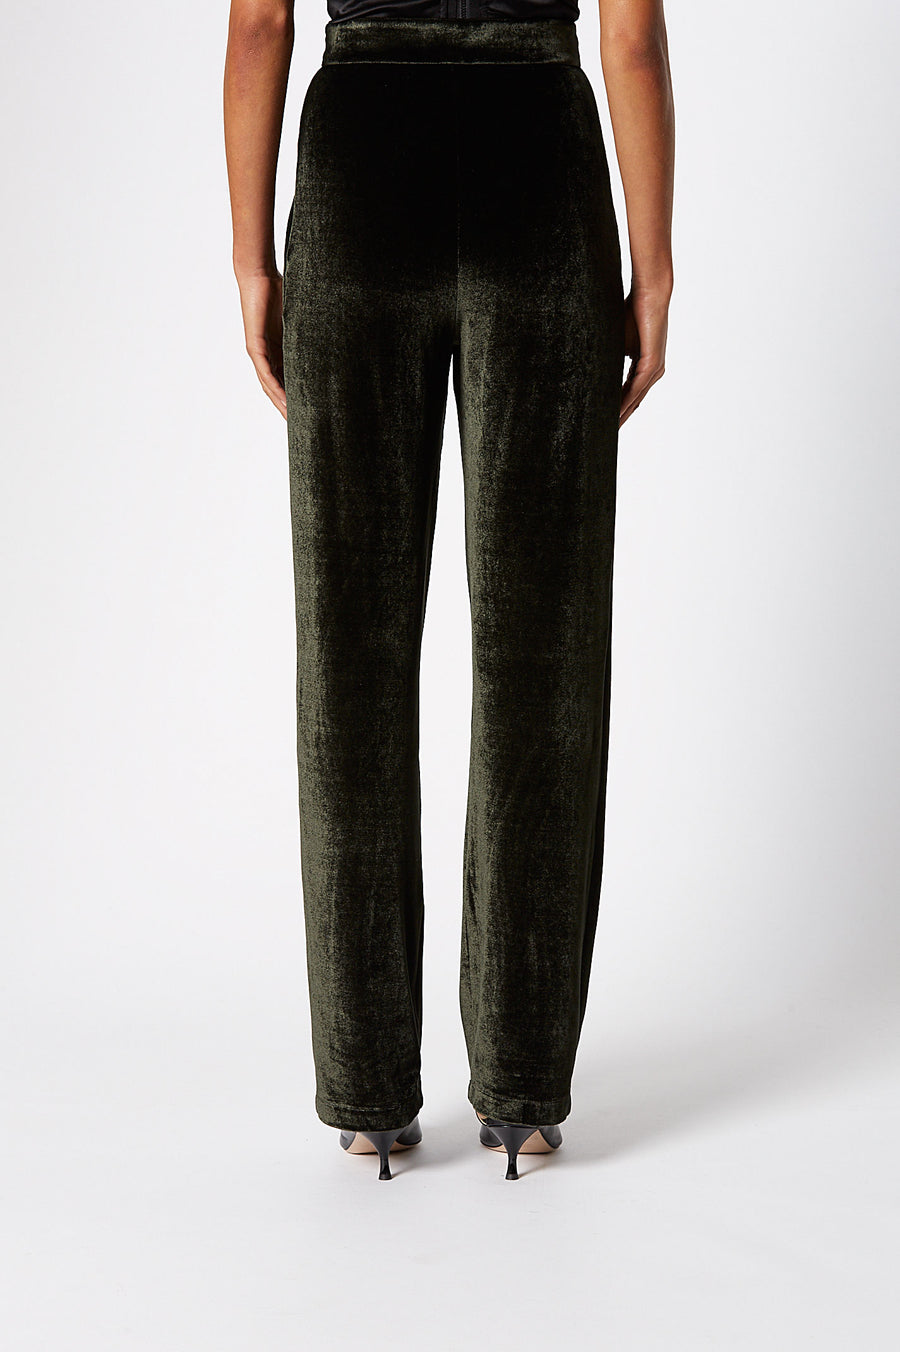 Velour Trouser, high-rise trouser, zip fastenings at front, slim-leg, Elasticated waistband, Color Forest